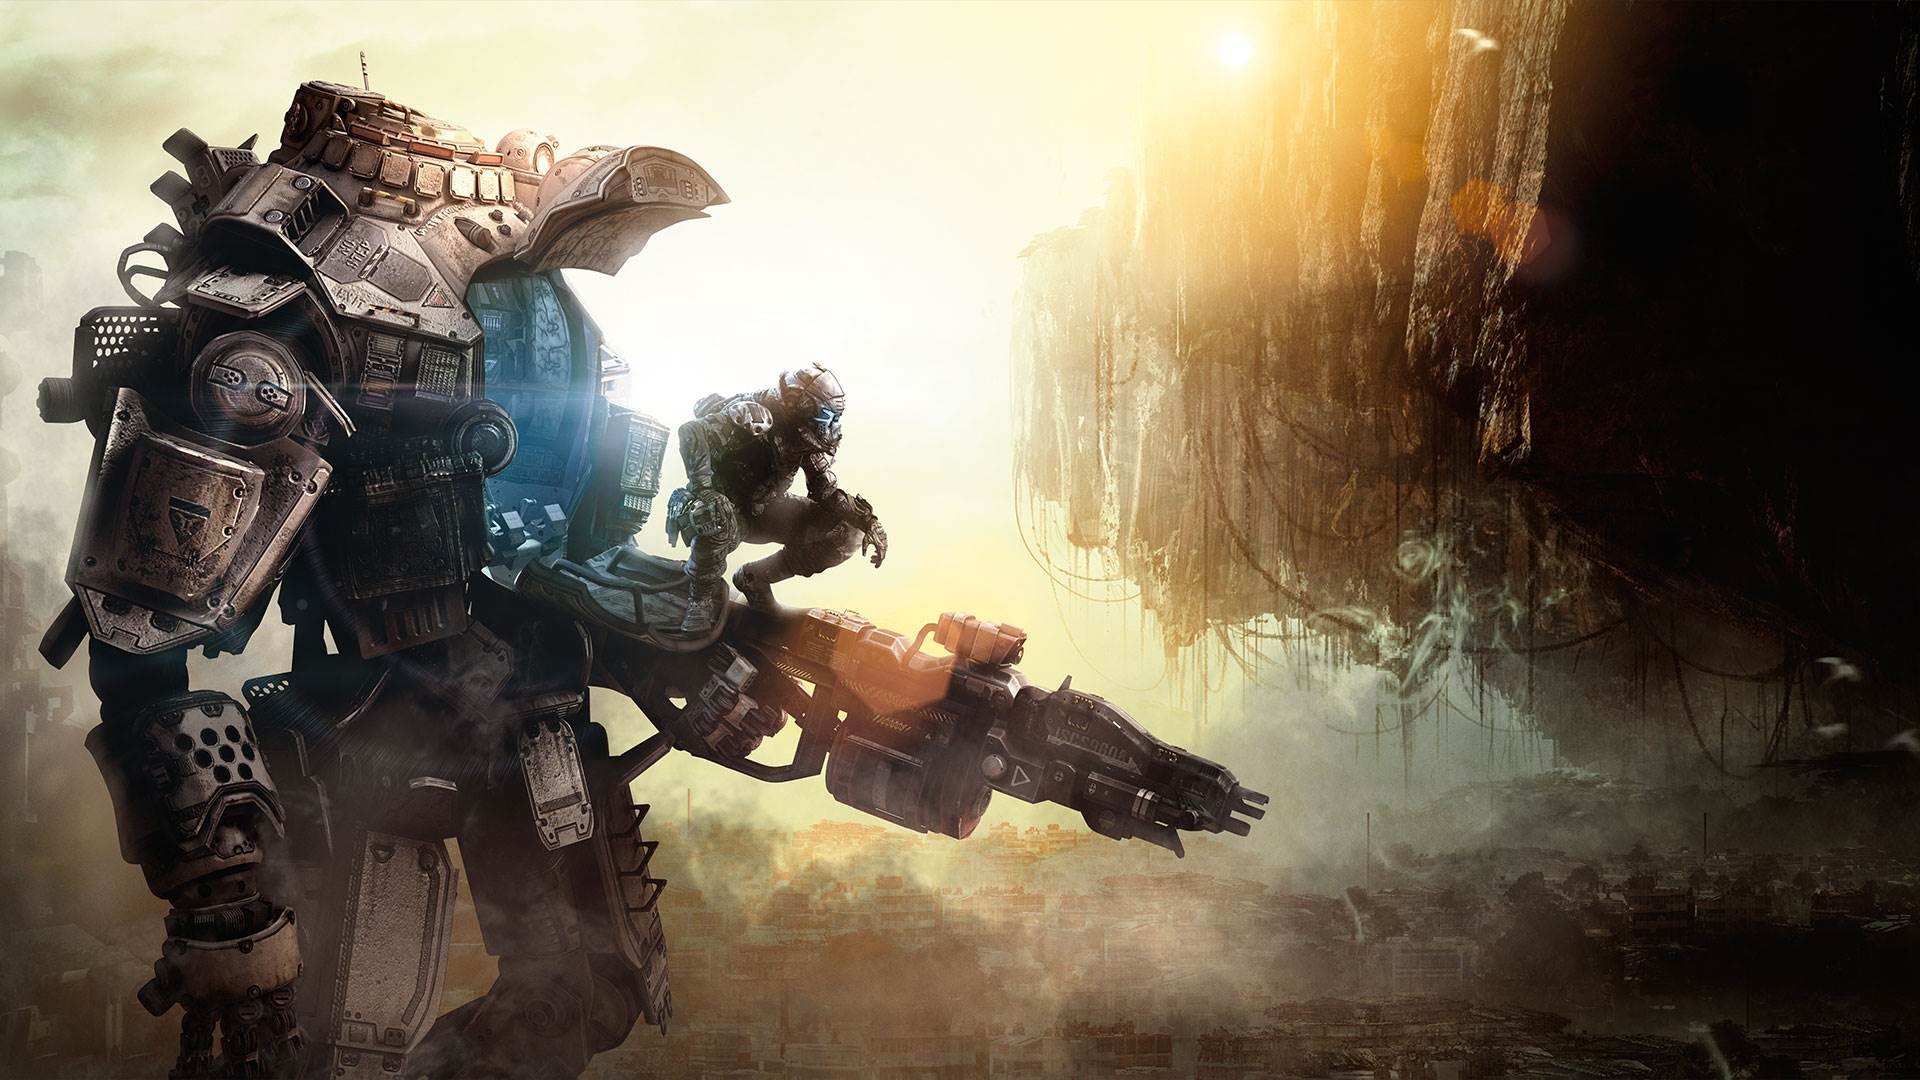 Titanfall Wallpapers in 1080P HD GamingBoltcom Video Game News 1920x1080